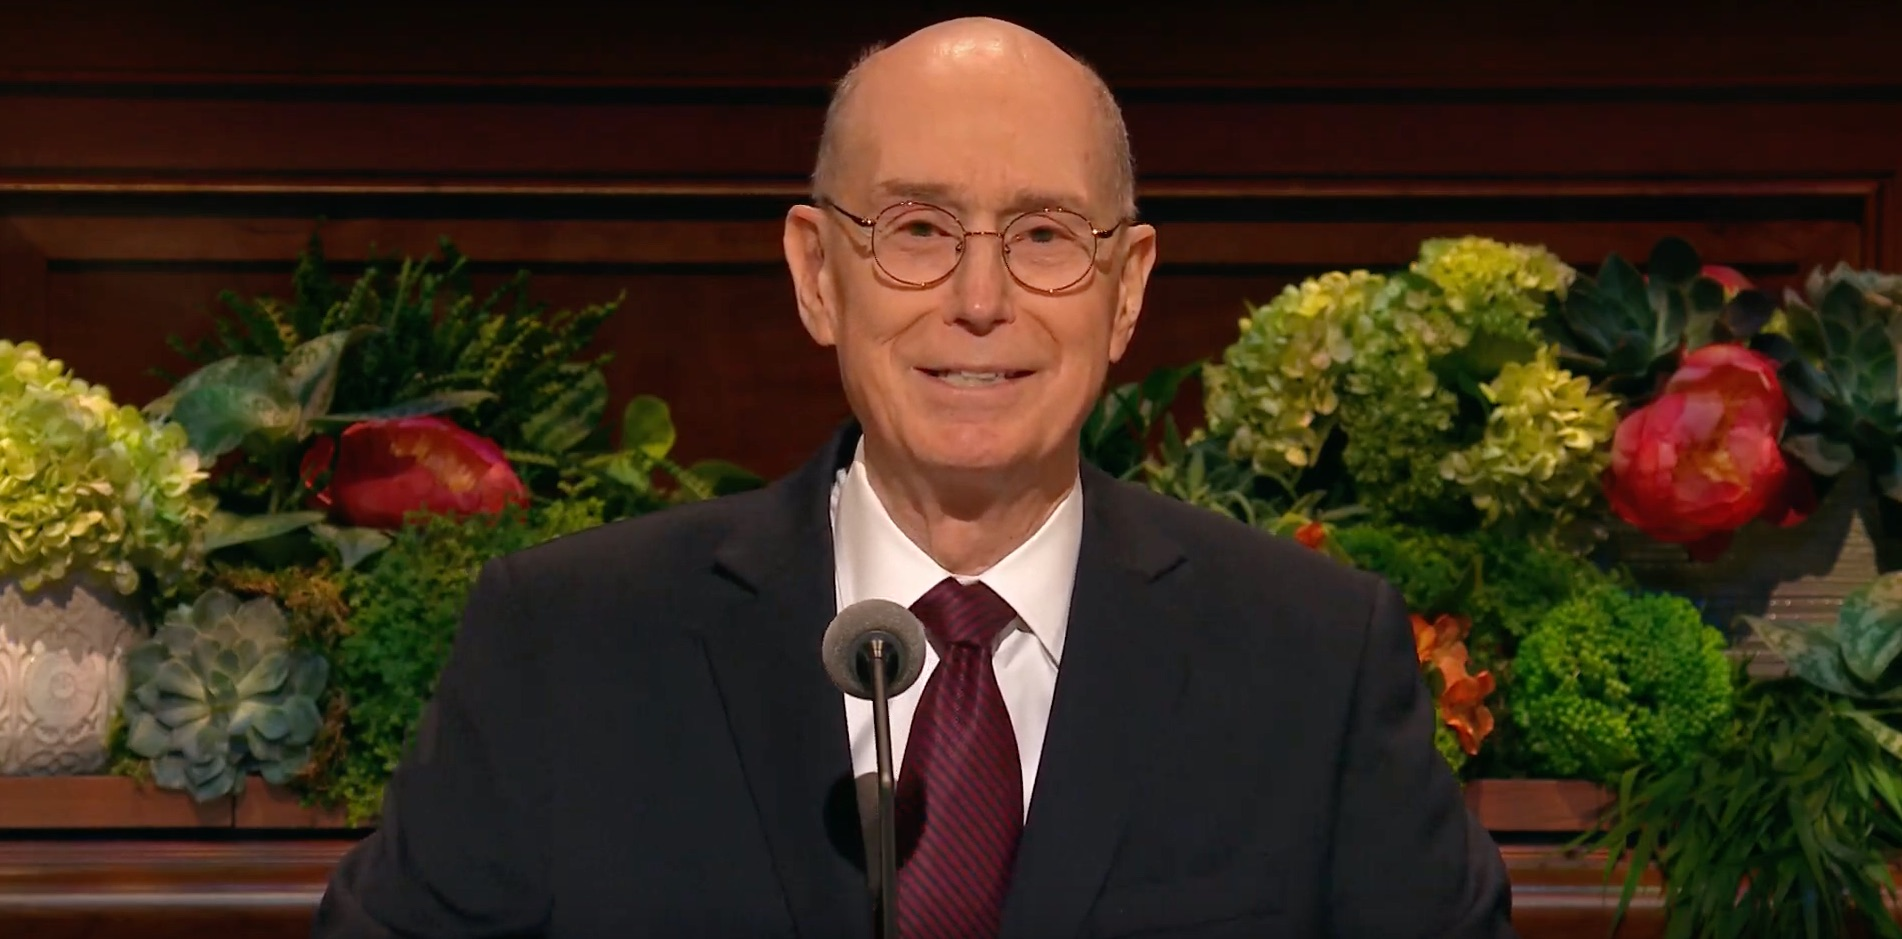 President Henry B. Eyring, second counselor in the First Presidency, gives his address during the Saturday morning session of the 189th Annual General Conference on April 6, 2019.